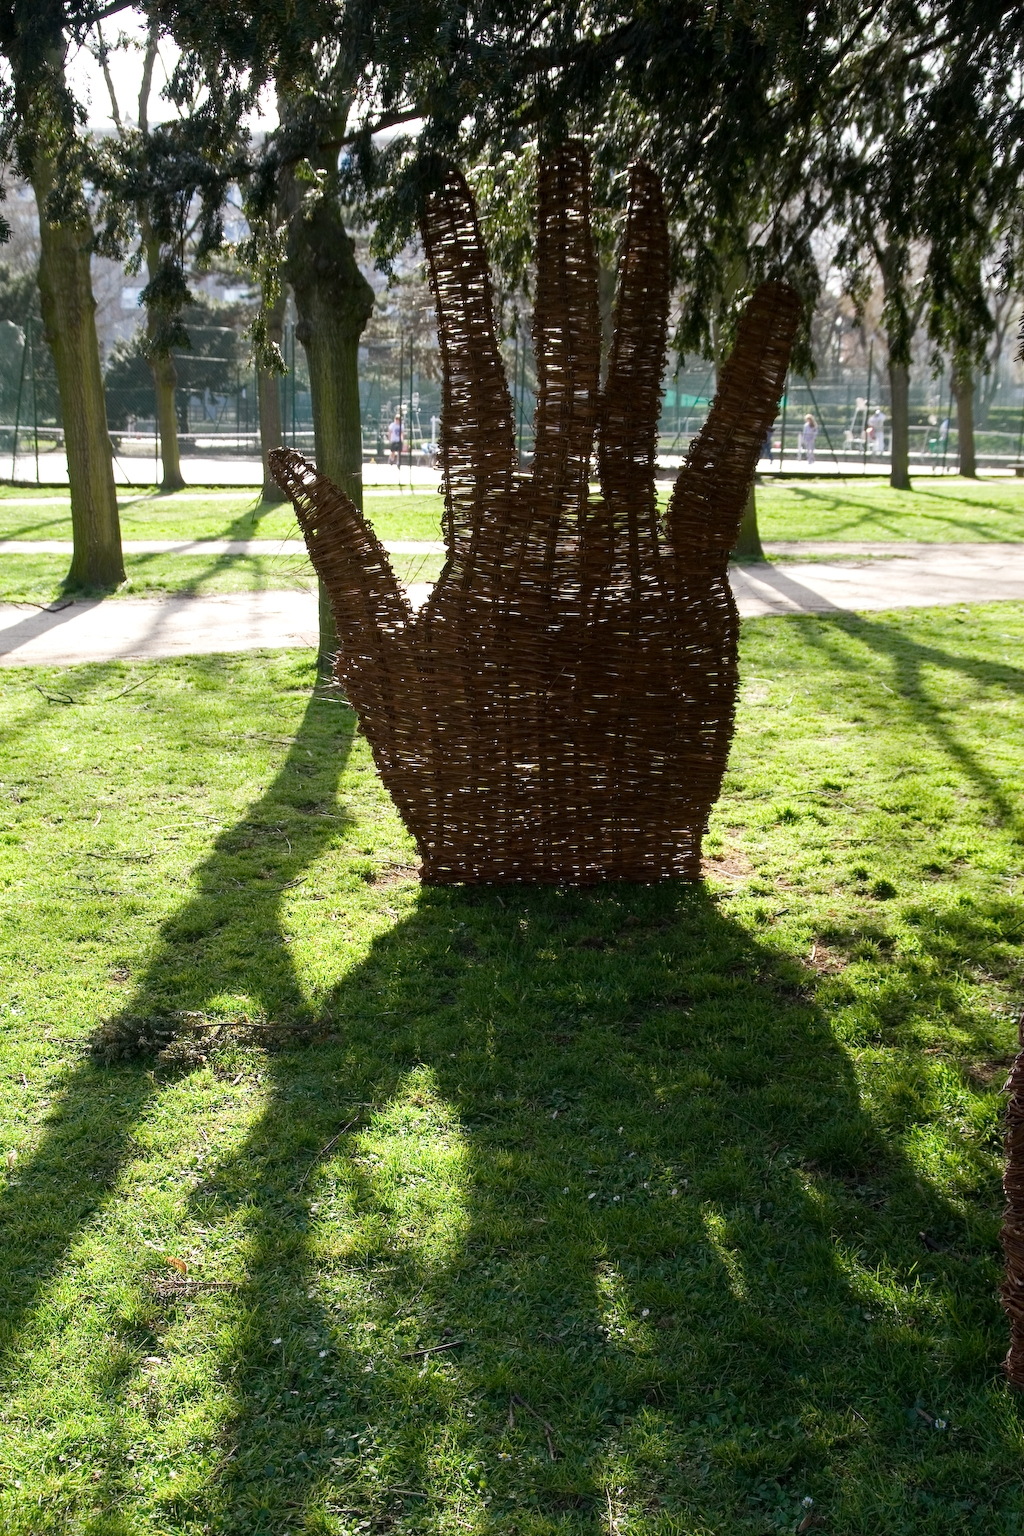 Les Mains d'Oeuvre, 2008, Woven Willow Wicker, Paris, France, This Site Specific installation was created in a park in Paris, France and supported by CiteCulture and an FSDIE grant. It lasted a month and a half, during which time the elements were modified by local climate conditions.